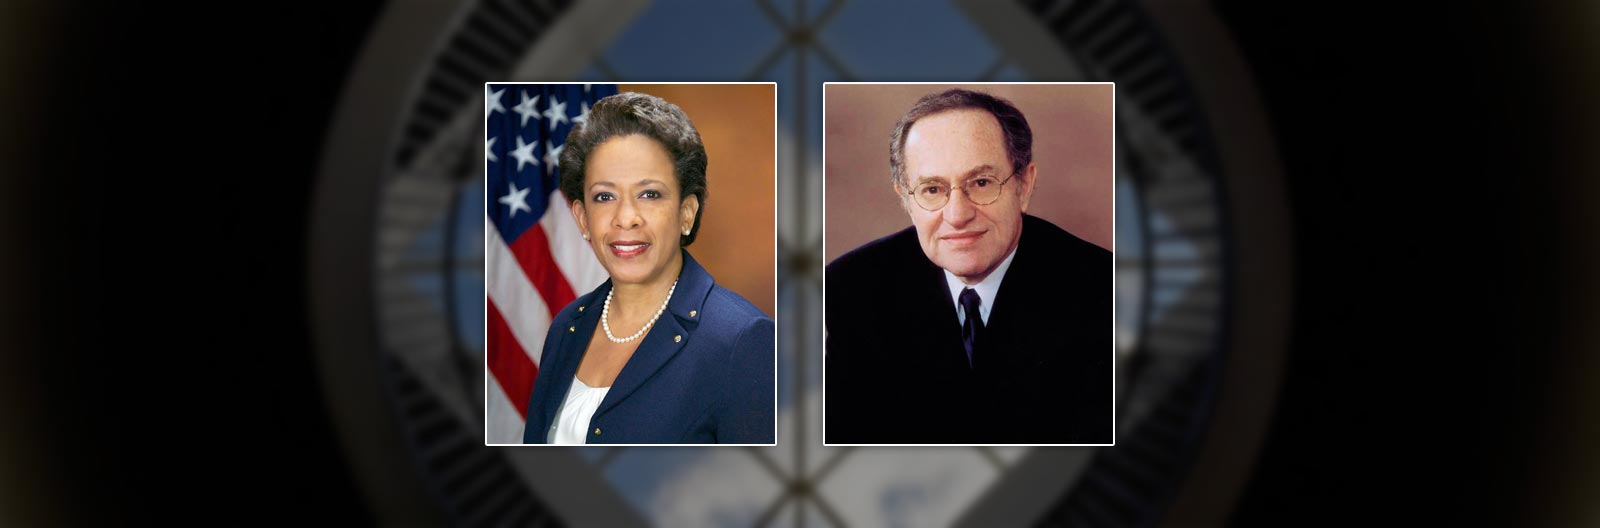 Loretta Lynch and Alan Dershowitz portraits